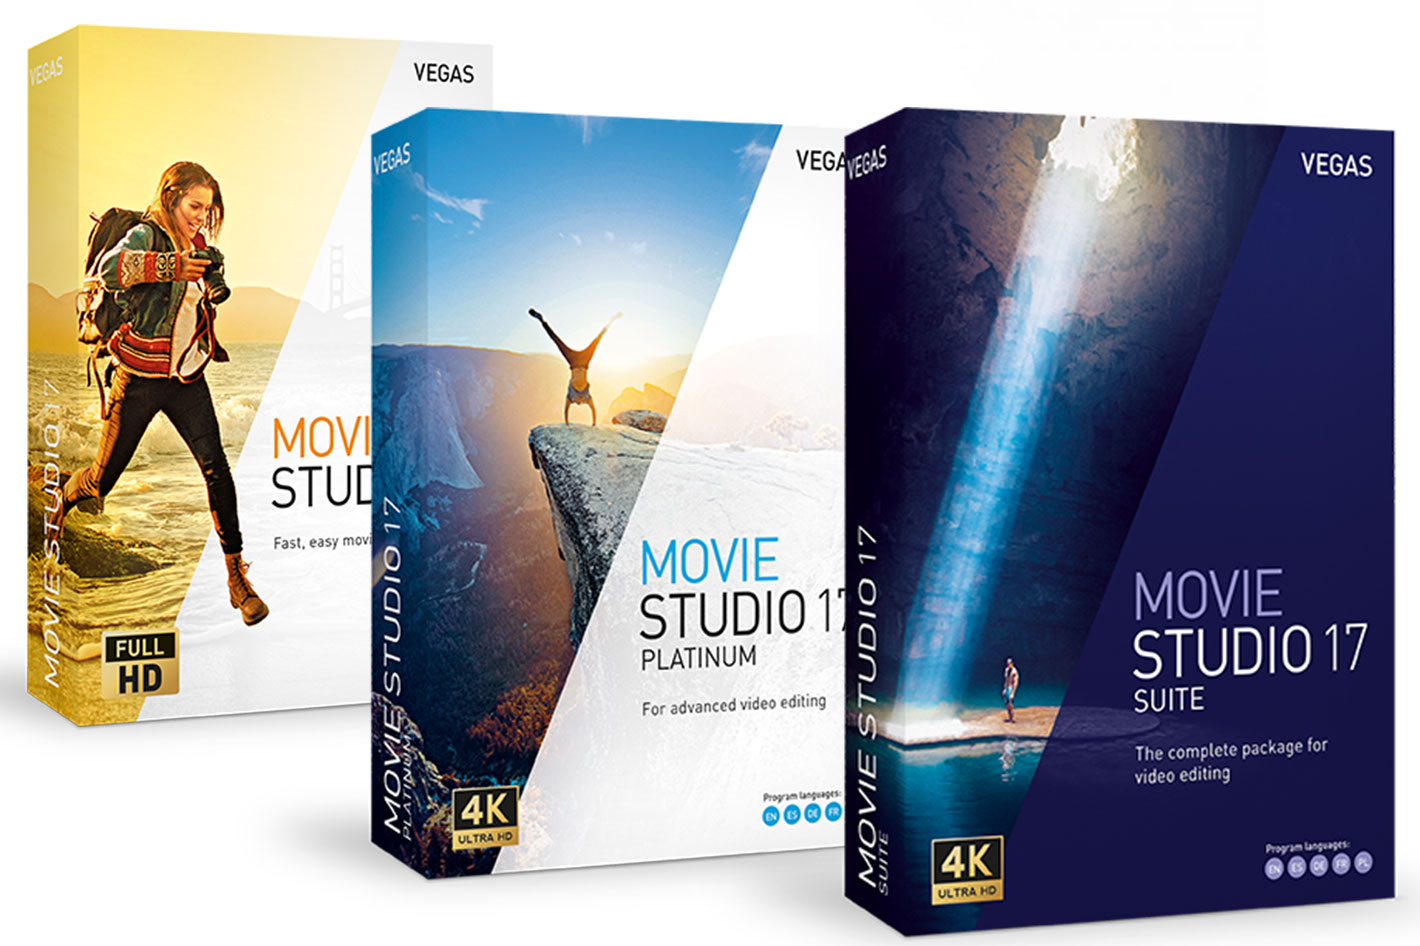 VEGAS Movie Studio 17: pro-level video editing features for the masses